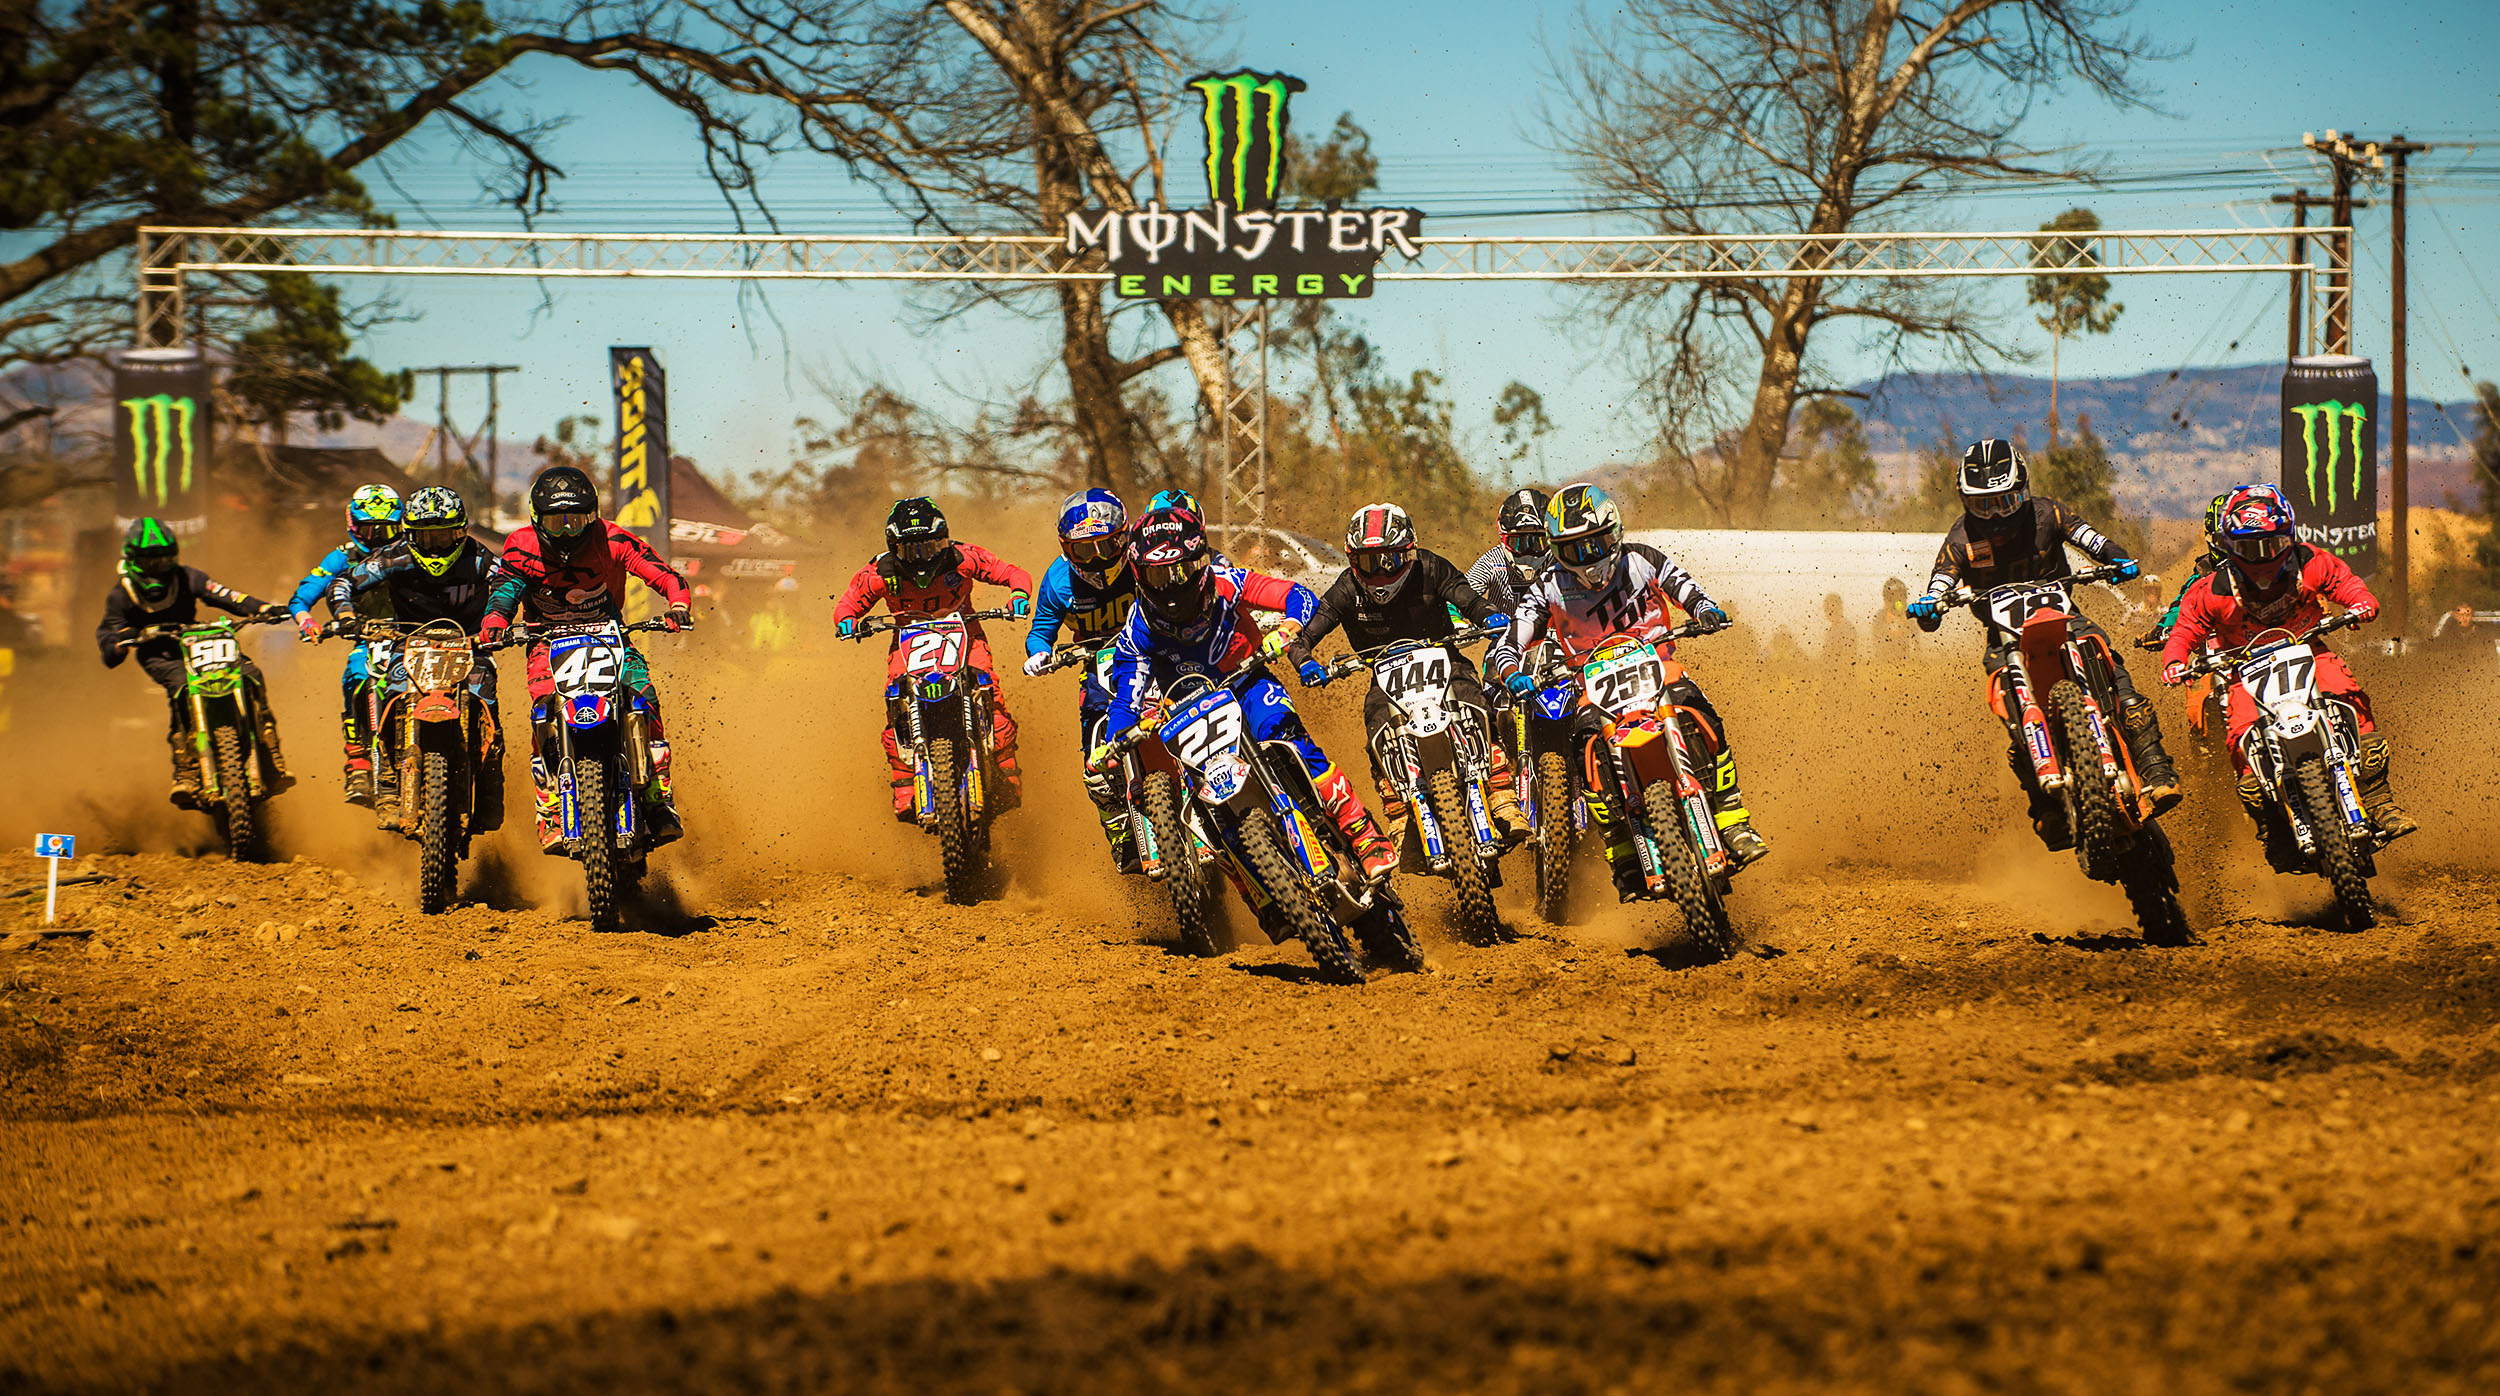 Motocross action at its best at Round 6 of the 2017 Monster Energy TRP Distributors SA National Motocross Championship